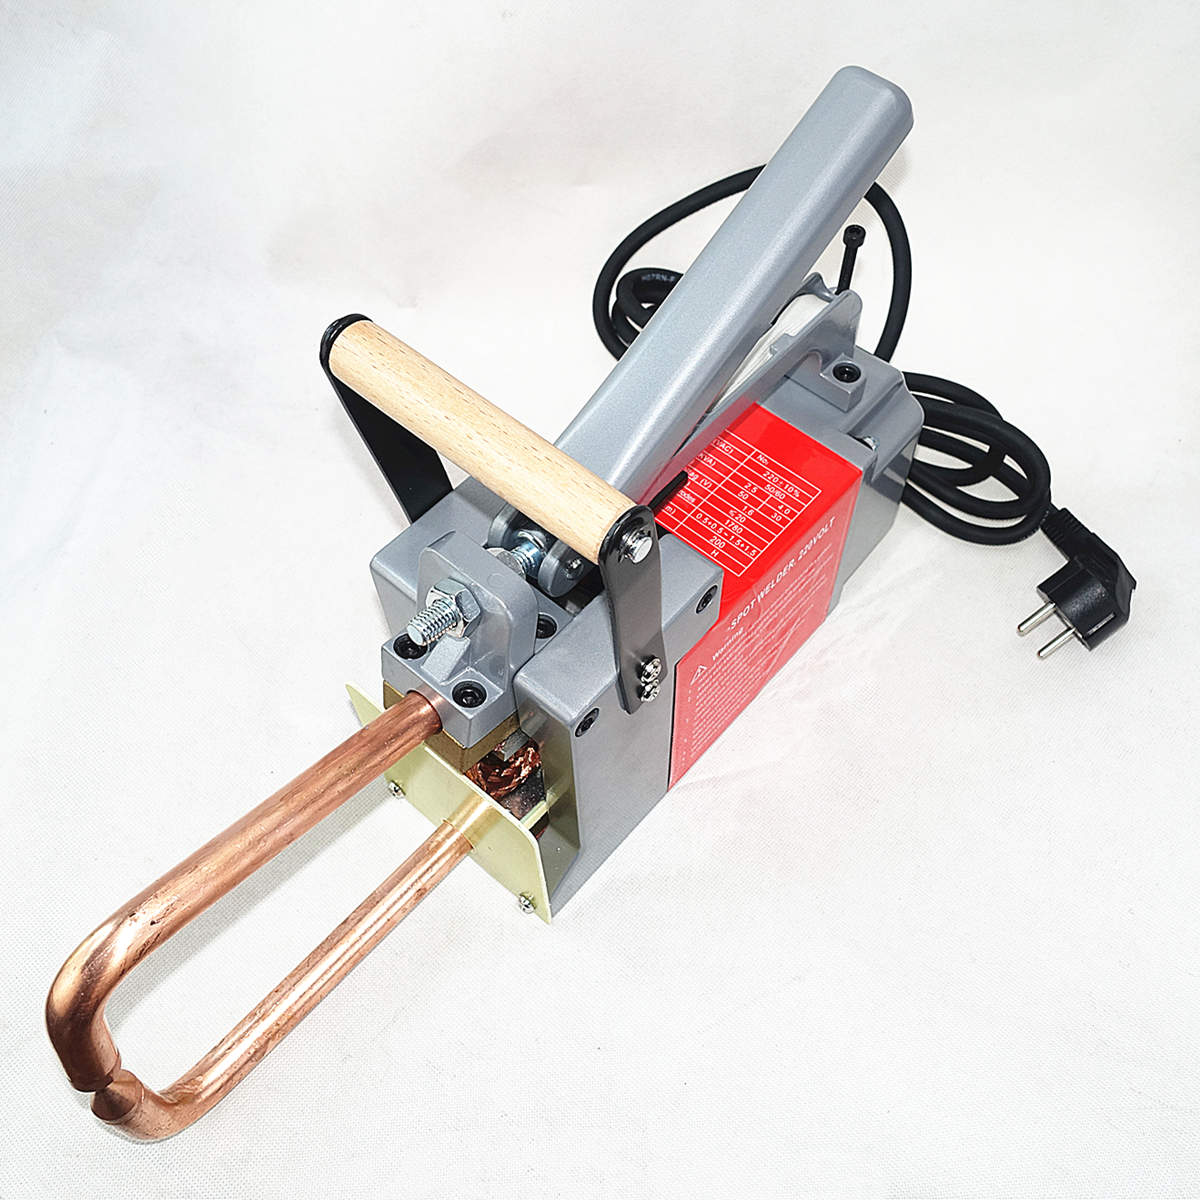 5 1 Welding 230V Joint Spot Machine Portable Plat Spot 5mm Steel UL CE Resistance Welder 1 110v